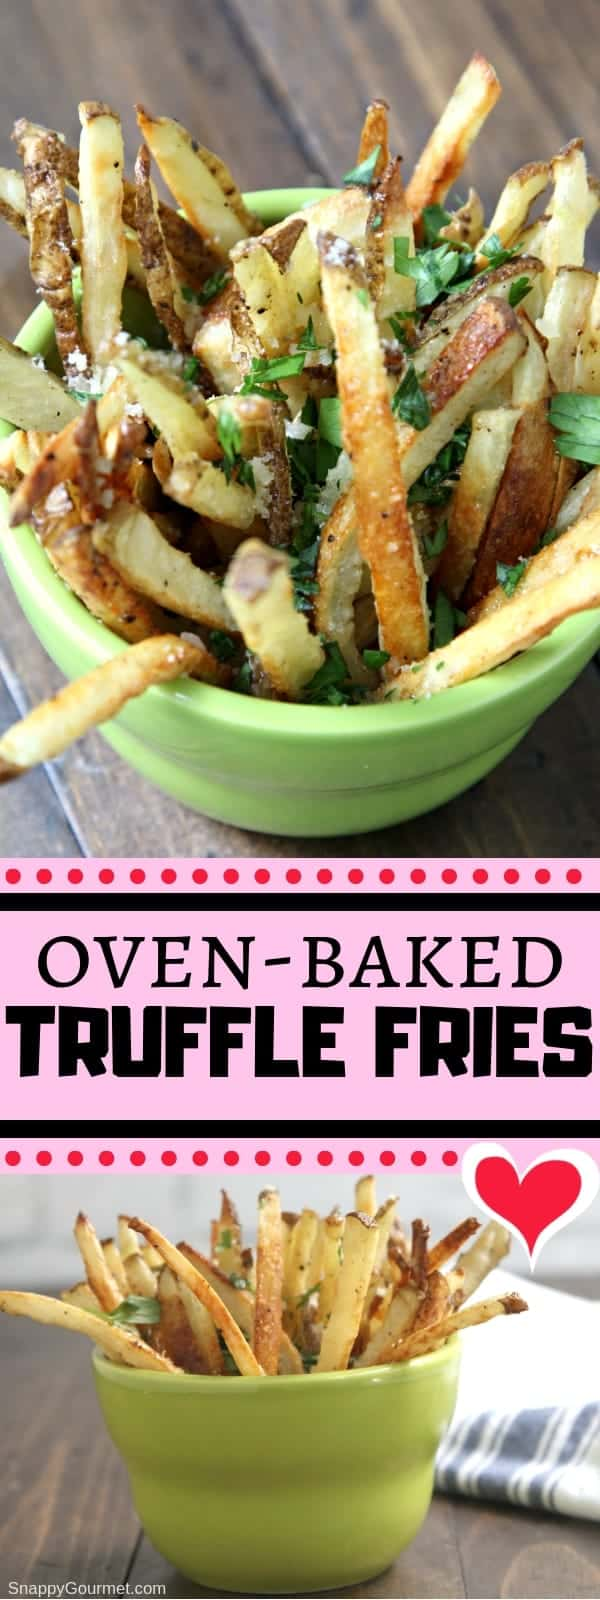 Homemade Oven-Baked Truffle Fries - easy baked french fries recipe with truffle oil, parmesan cheese, and parsley. Bake in the oven or use an air fryer!  #Fries #Truffles #SnappyGourmet #Potato #AirFryer #Parmesan #Vegetable #SideDish